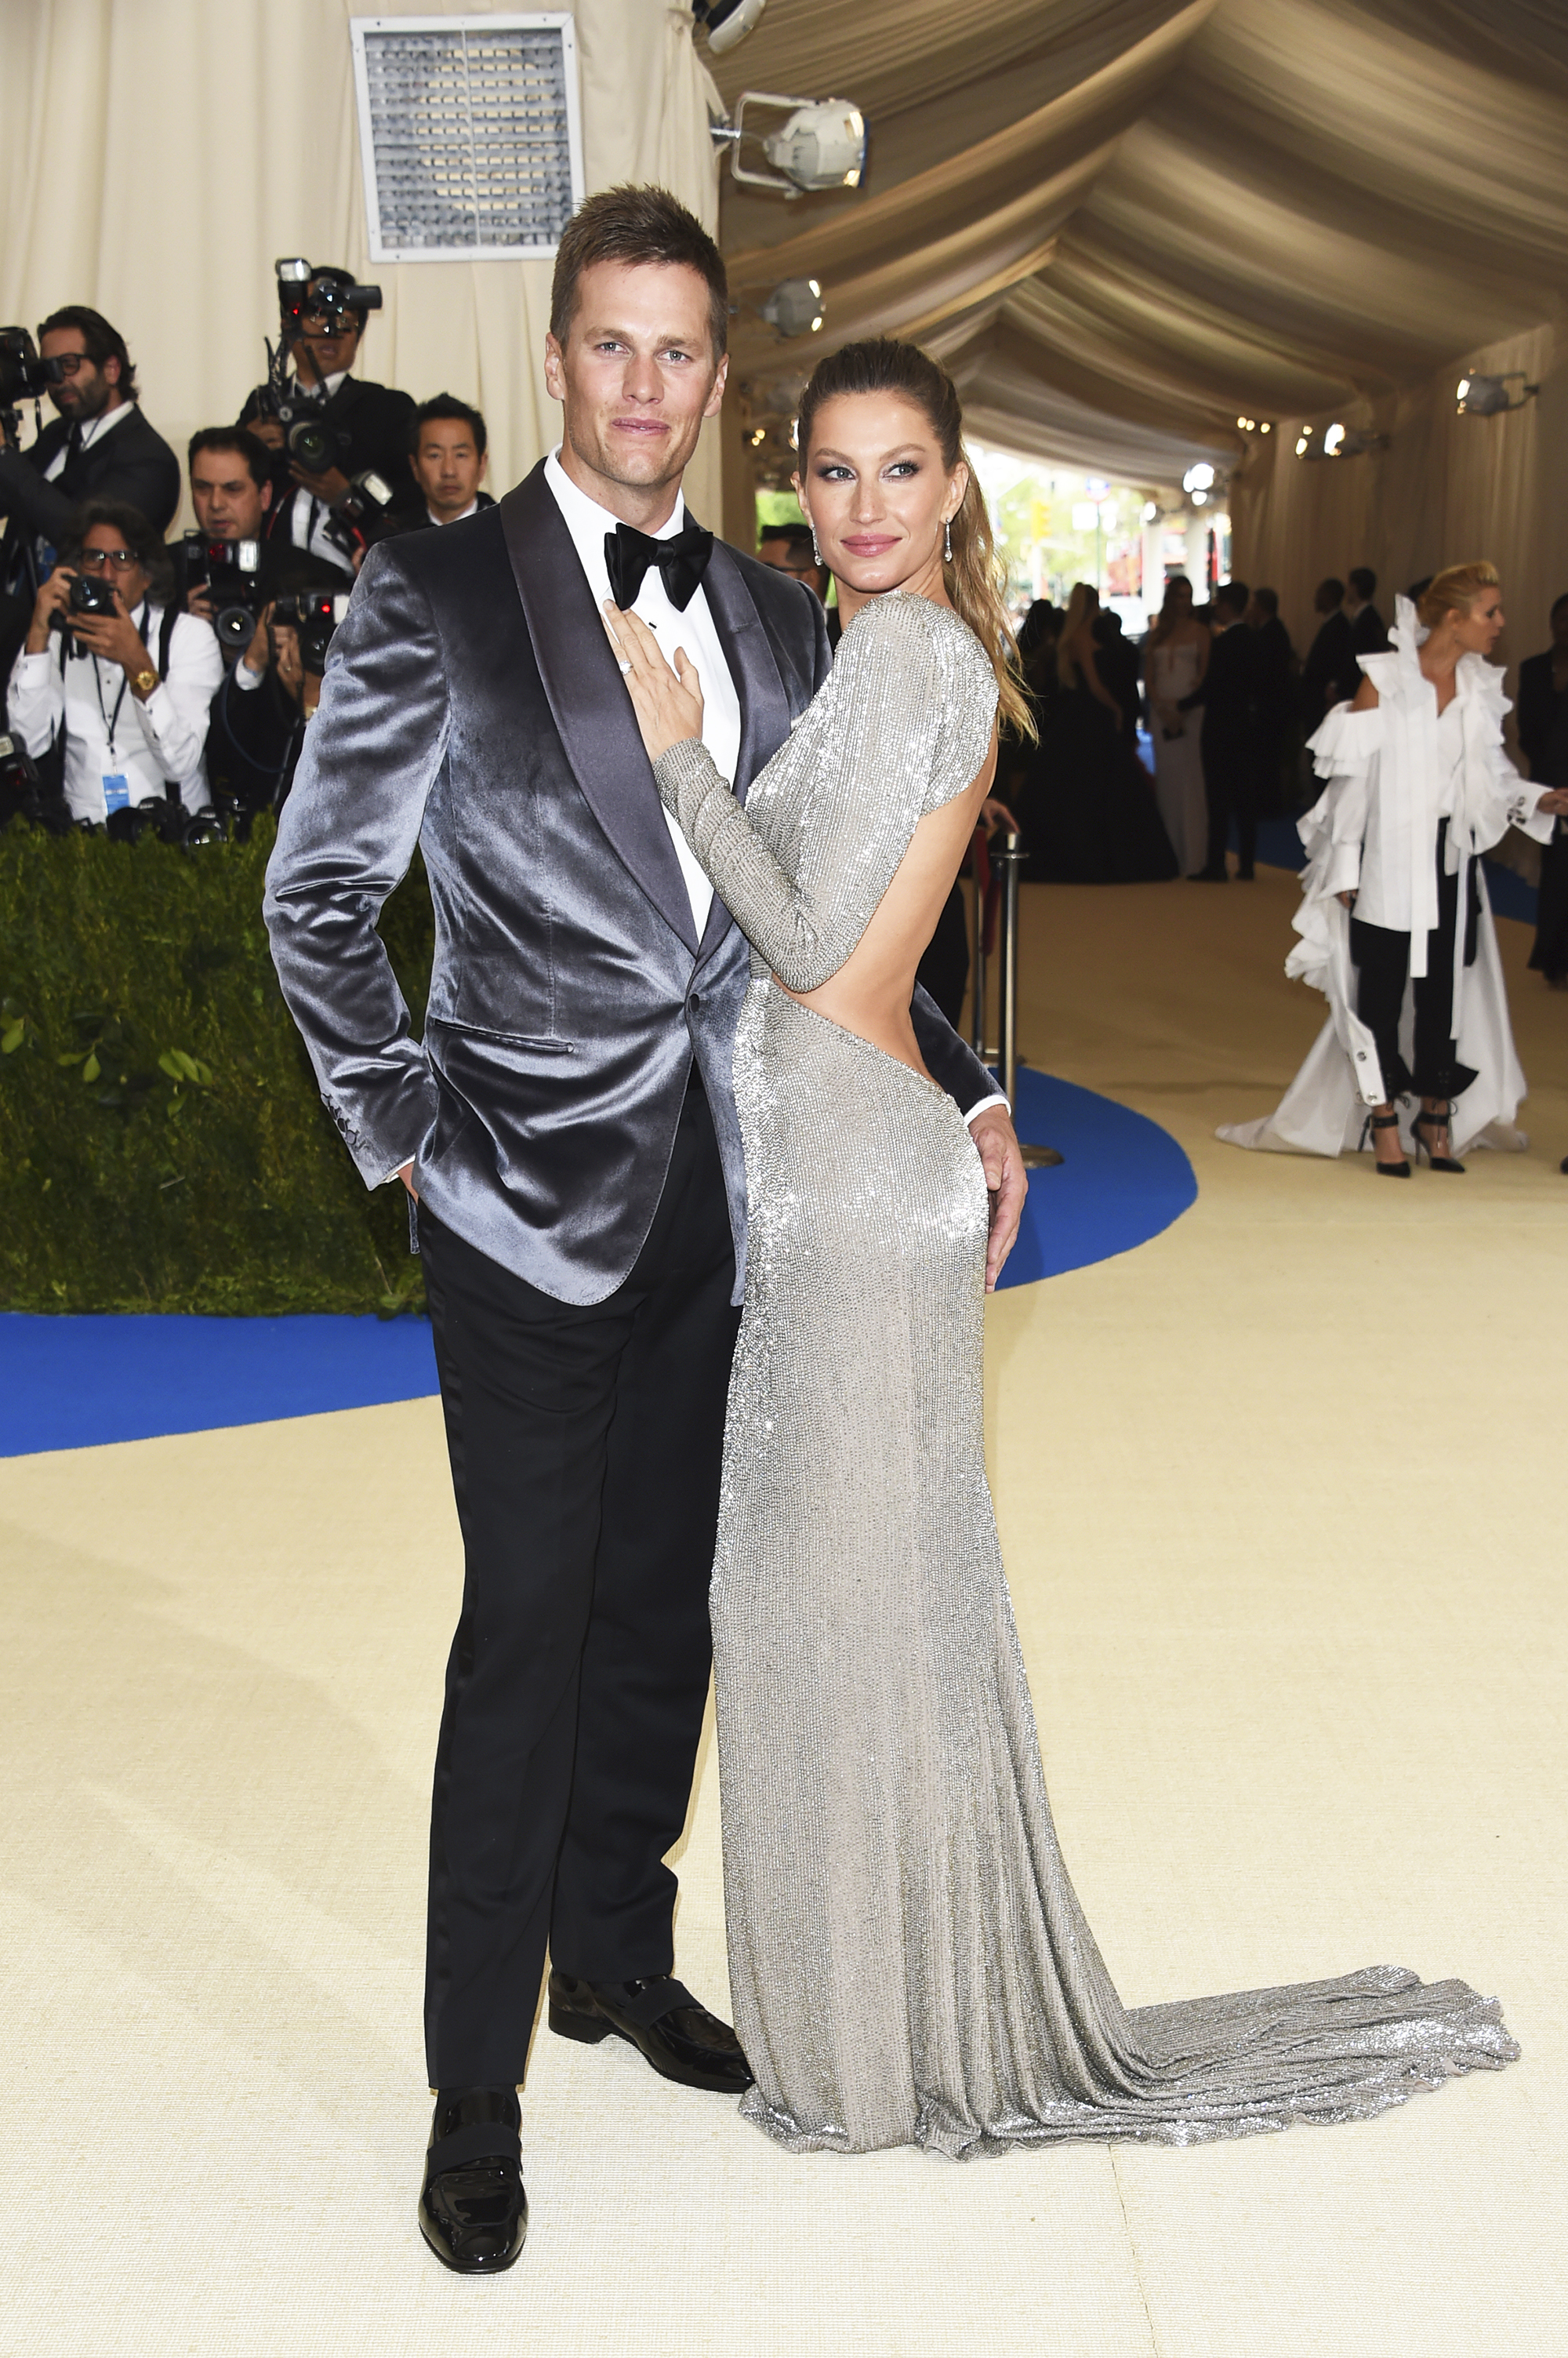 Tom Brady, left, and Gisele Bundchen attend The Metropolitan Museum of Art's Costume Institute benefit gala celebrating the opening of the Rei Kawakubo/Comme des Garçons: Art of the In-Between exhibition in New York City, on May 1, 2017.